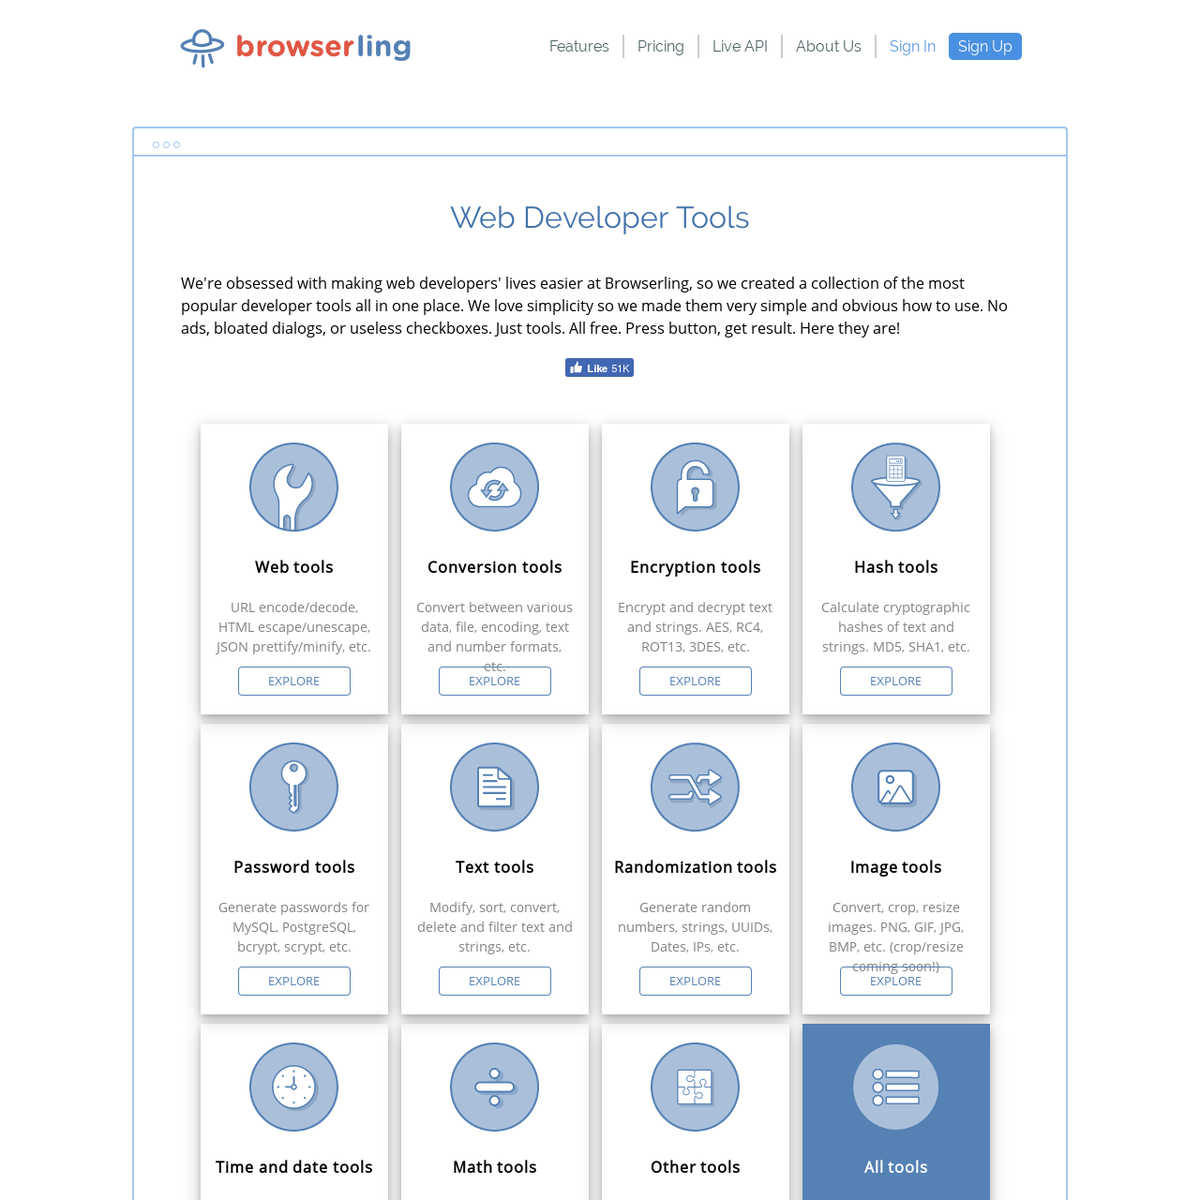 browserling.com/tools/